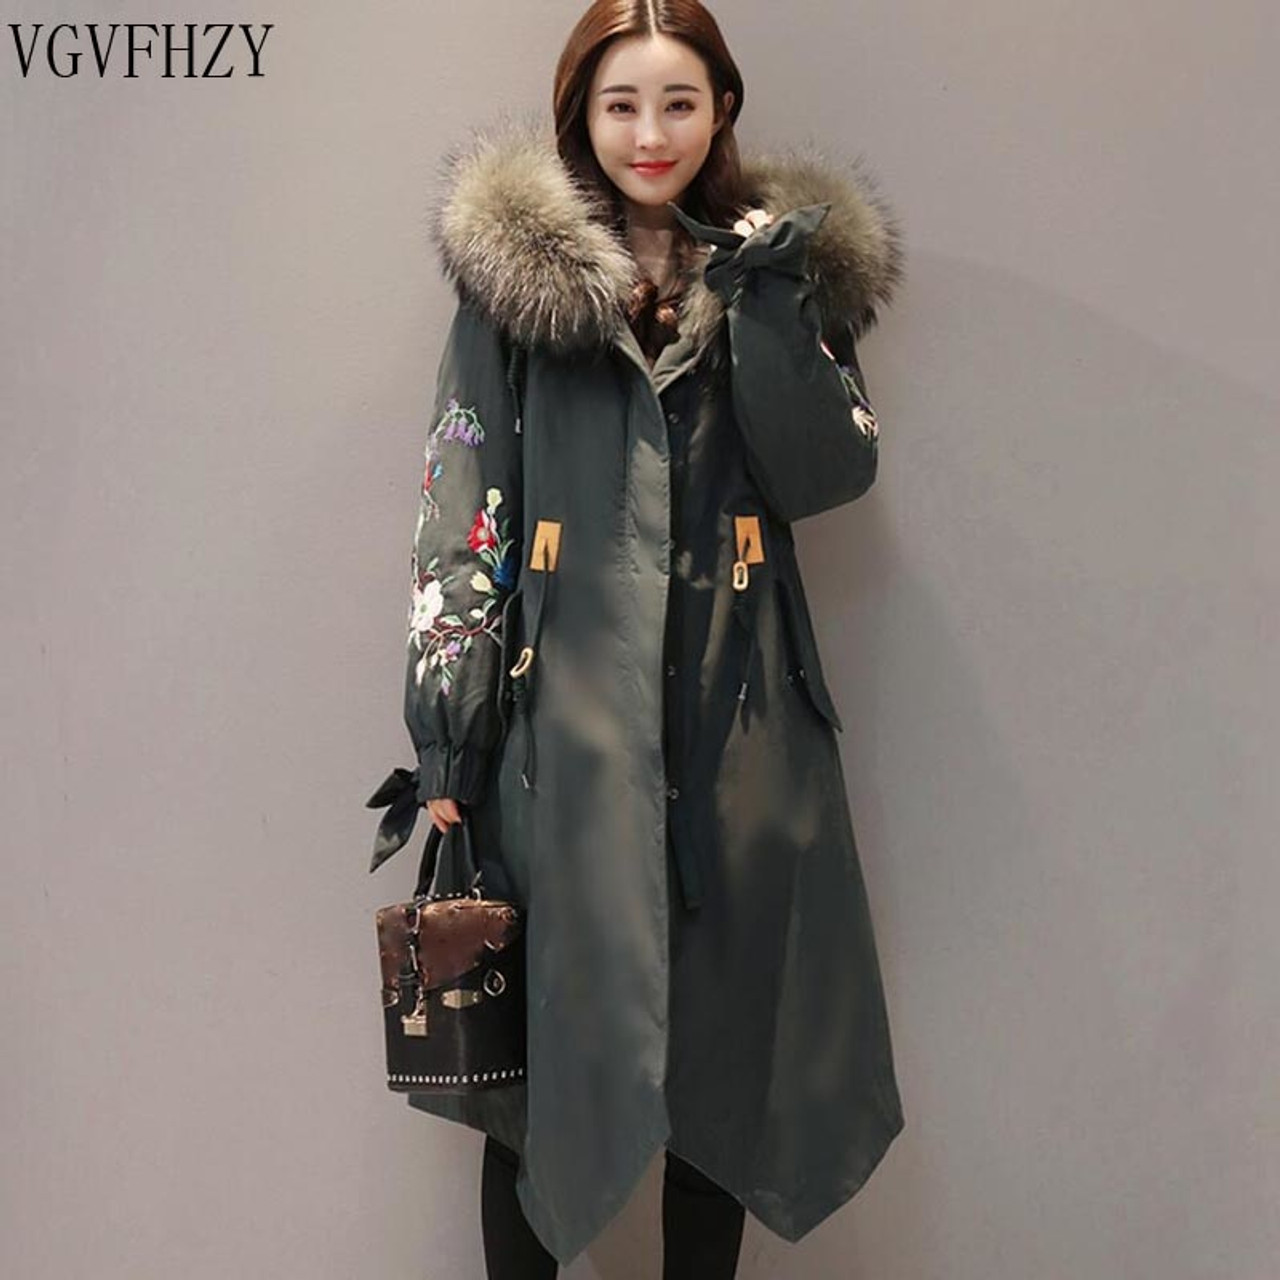 dbc9e8e69fb41 Winter Jacket Women 2018 Large Fur collar Hooded Down Jacket Thick Warm  Loose Female Parkas embroidery ...